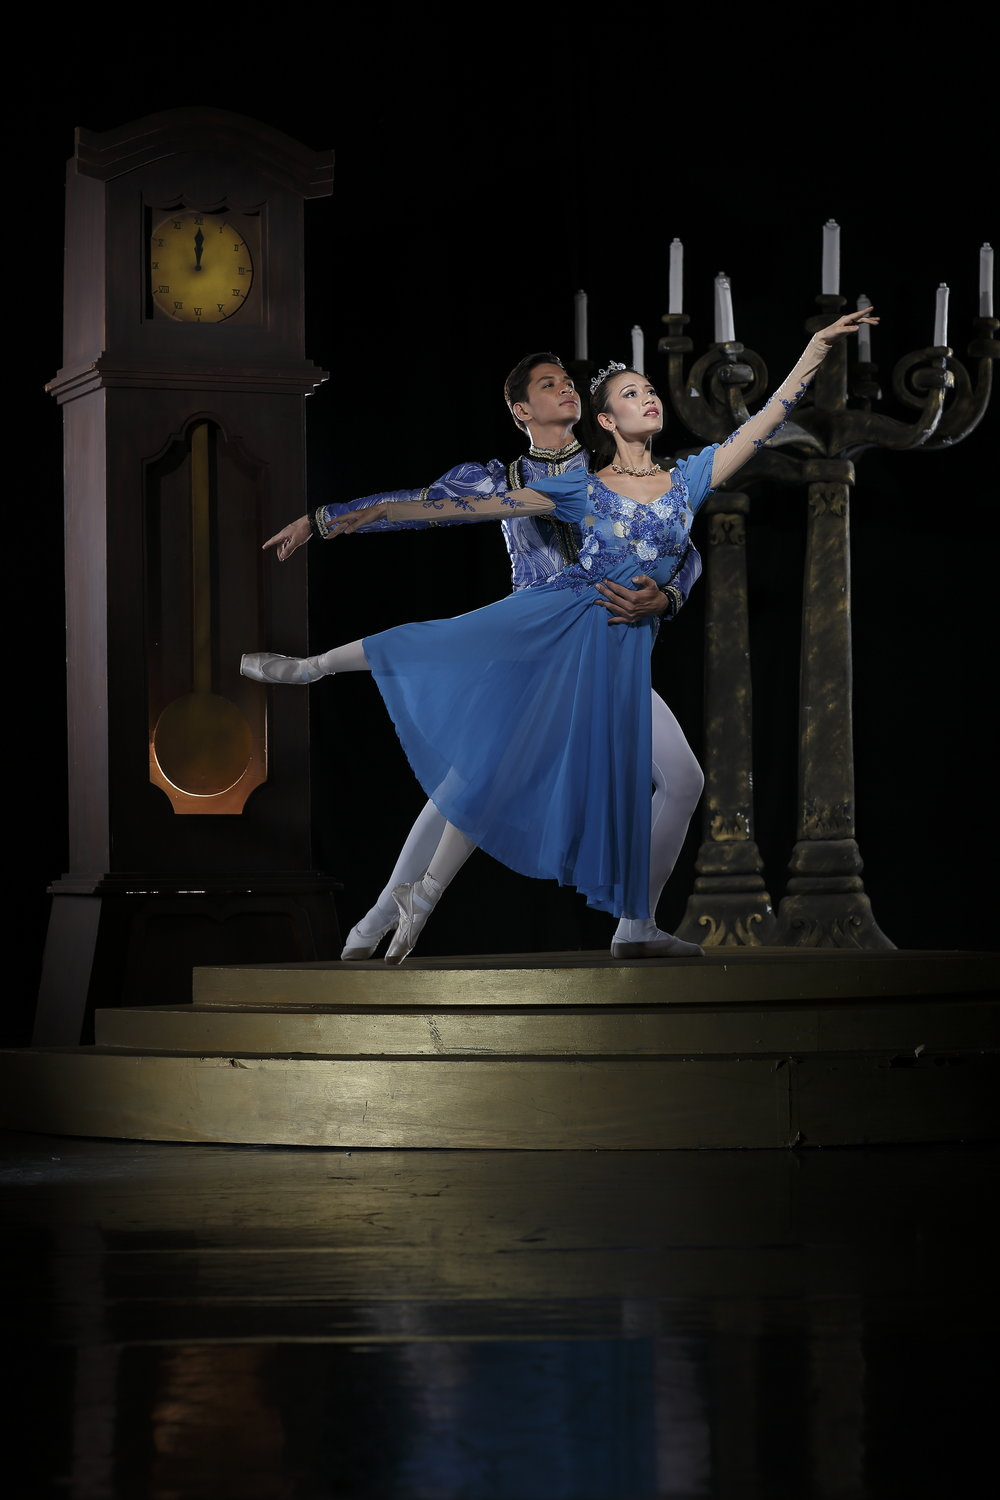 Partnered by real-life beau Mark Sumaylo in    Cinderella   , Ballet Manila's pre-holiday presentation